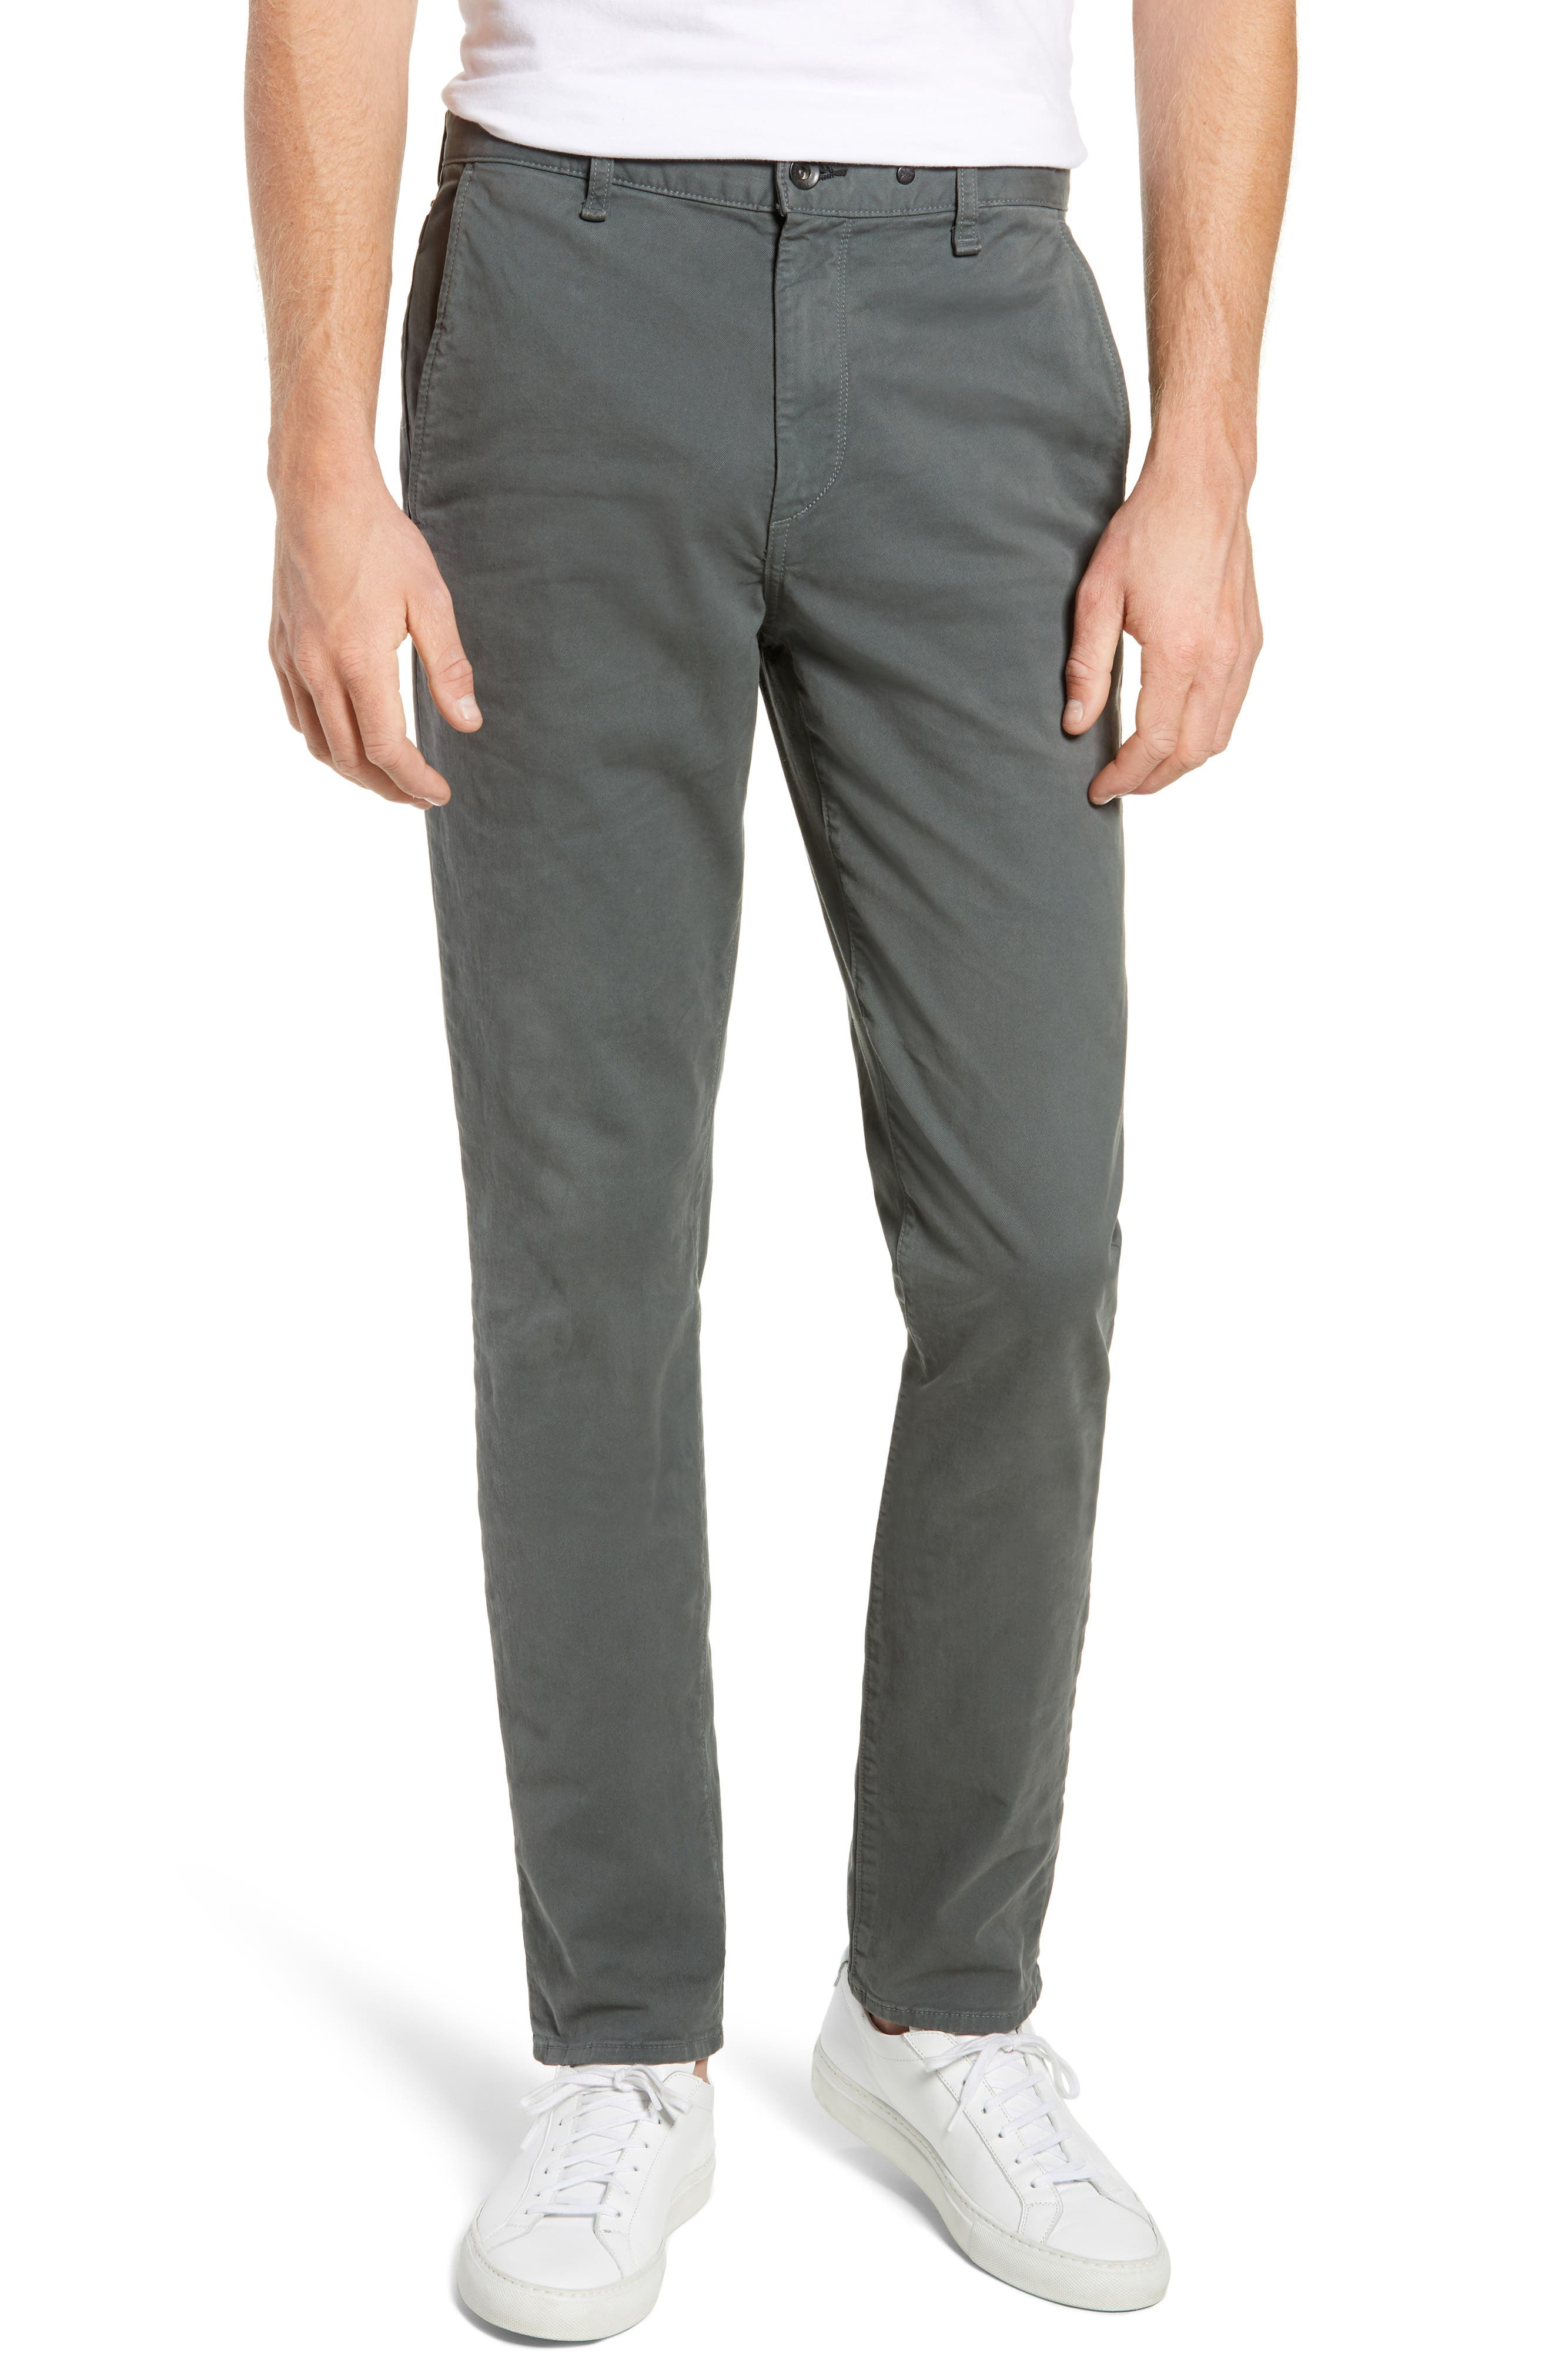 Fit 2 Slim Fit Chinos,                         Main,                         color, TORREY PINE